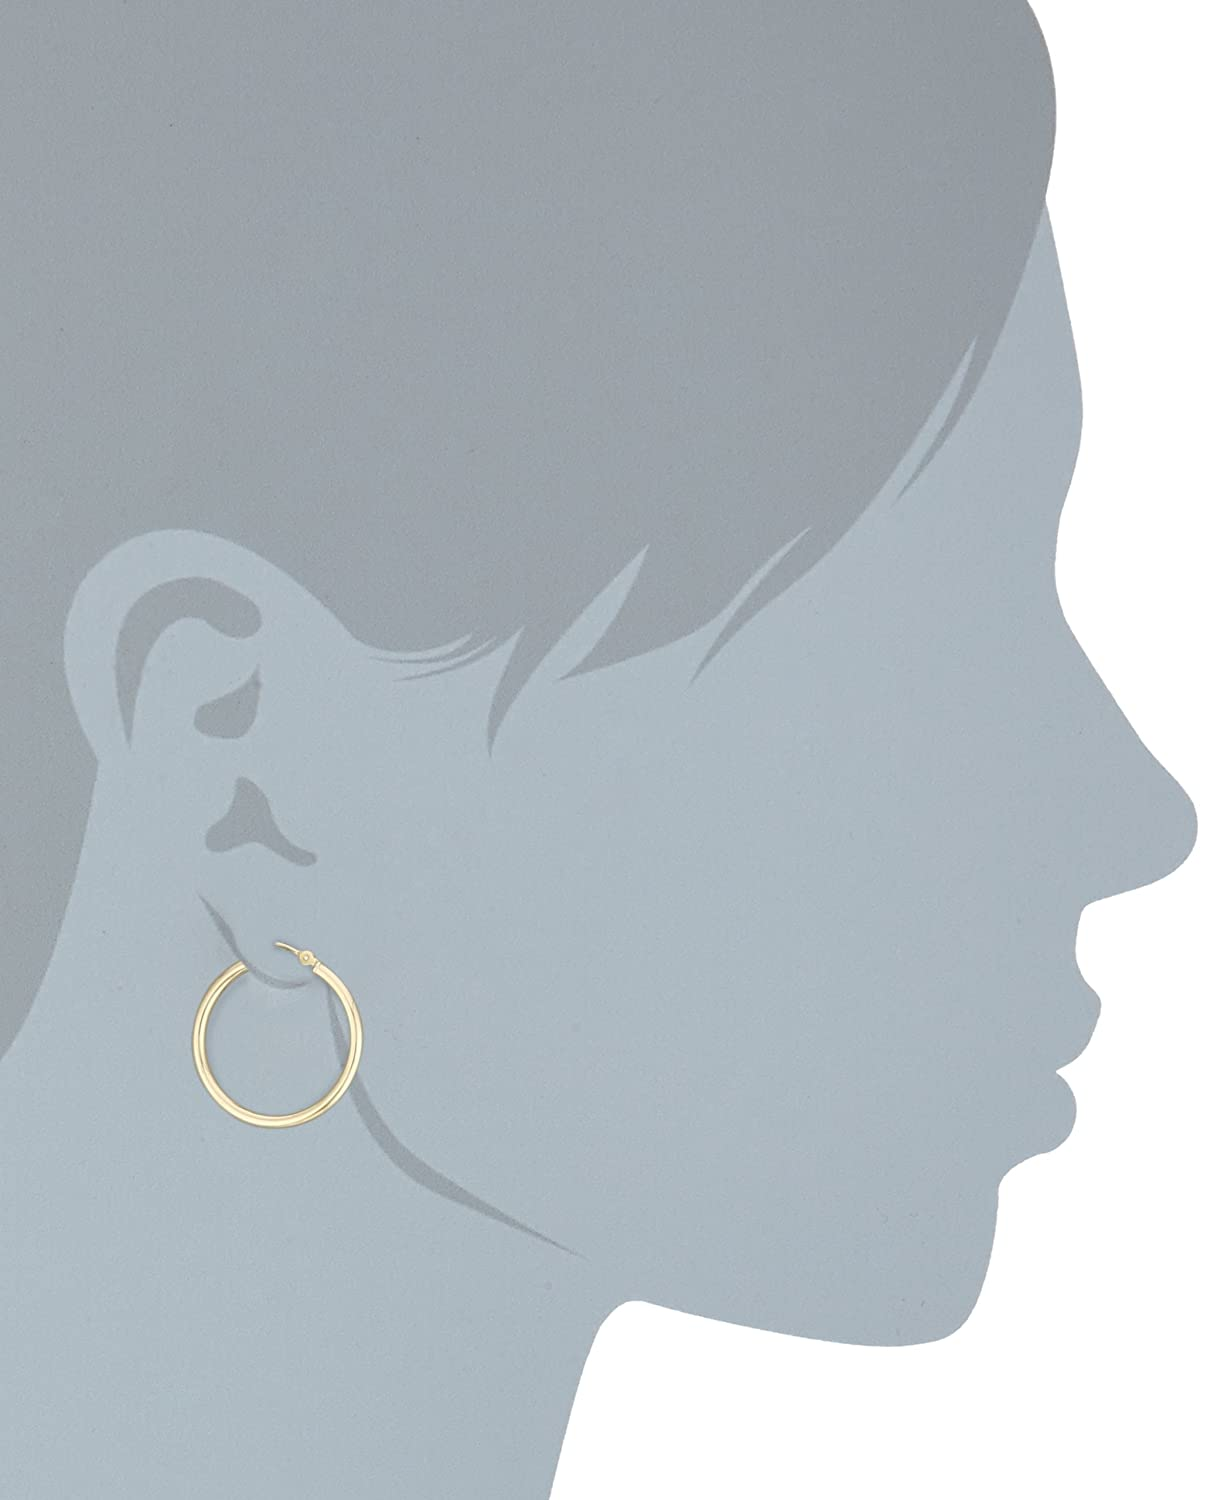 Duragold 14k Gold Hoop Earrings (1 Diameter)